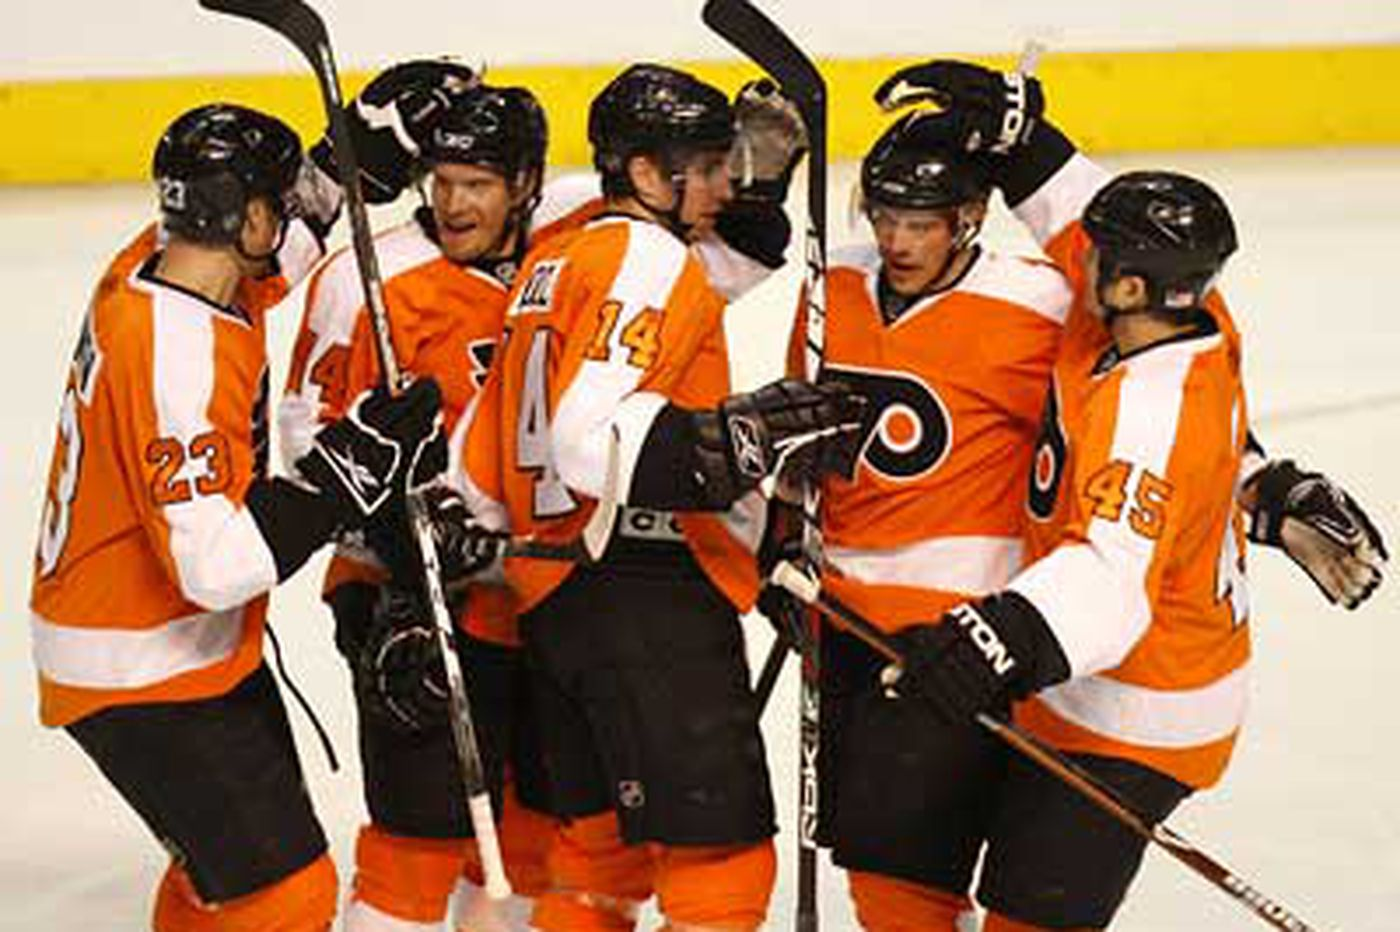 Gagne's goal lifts Flyers over Ottawa